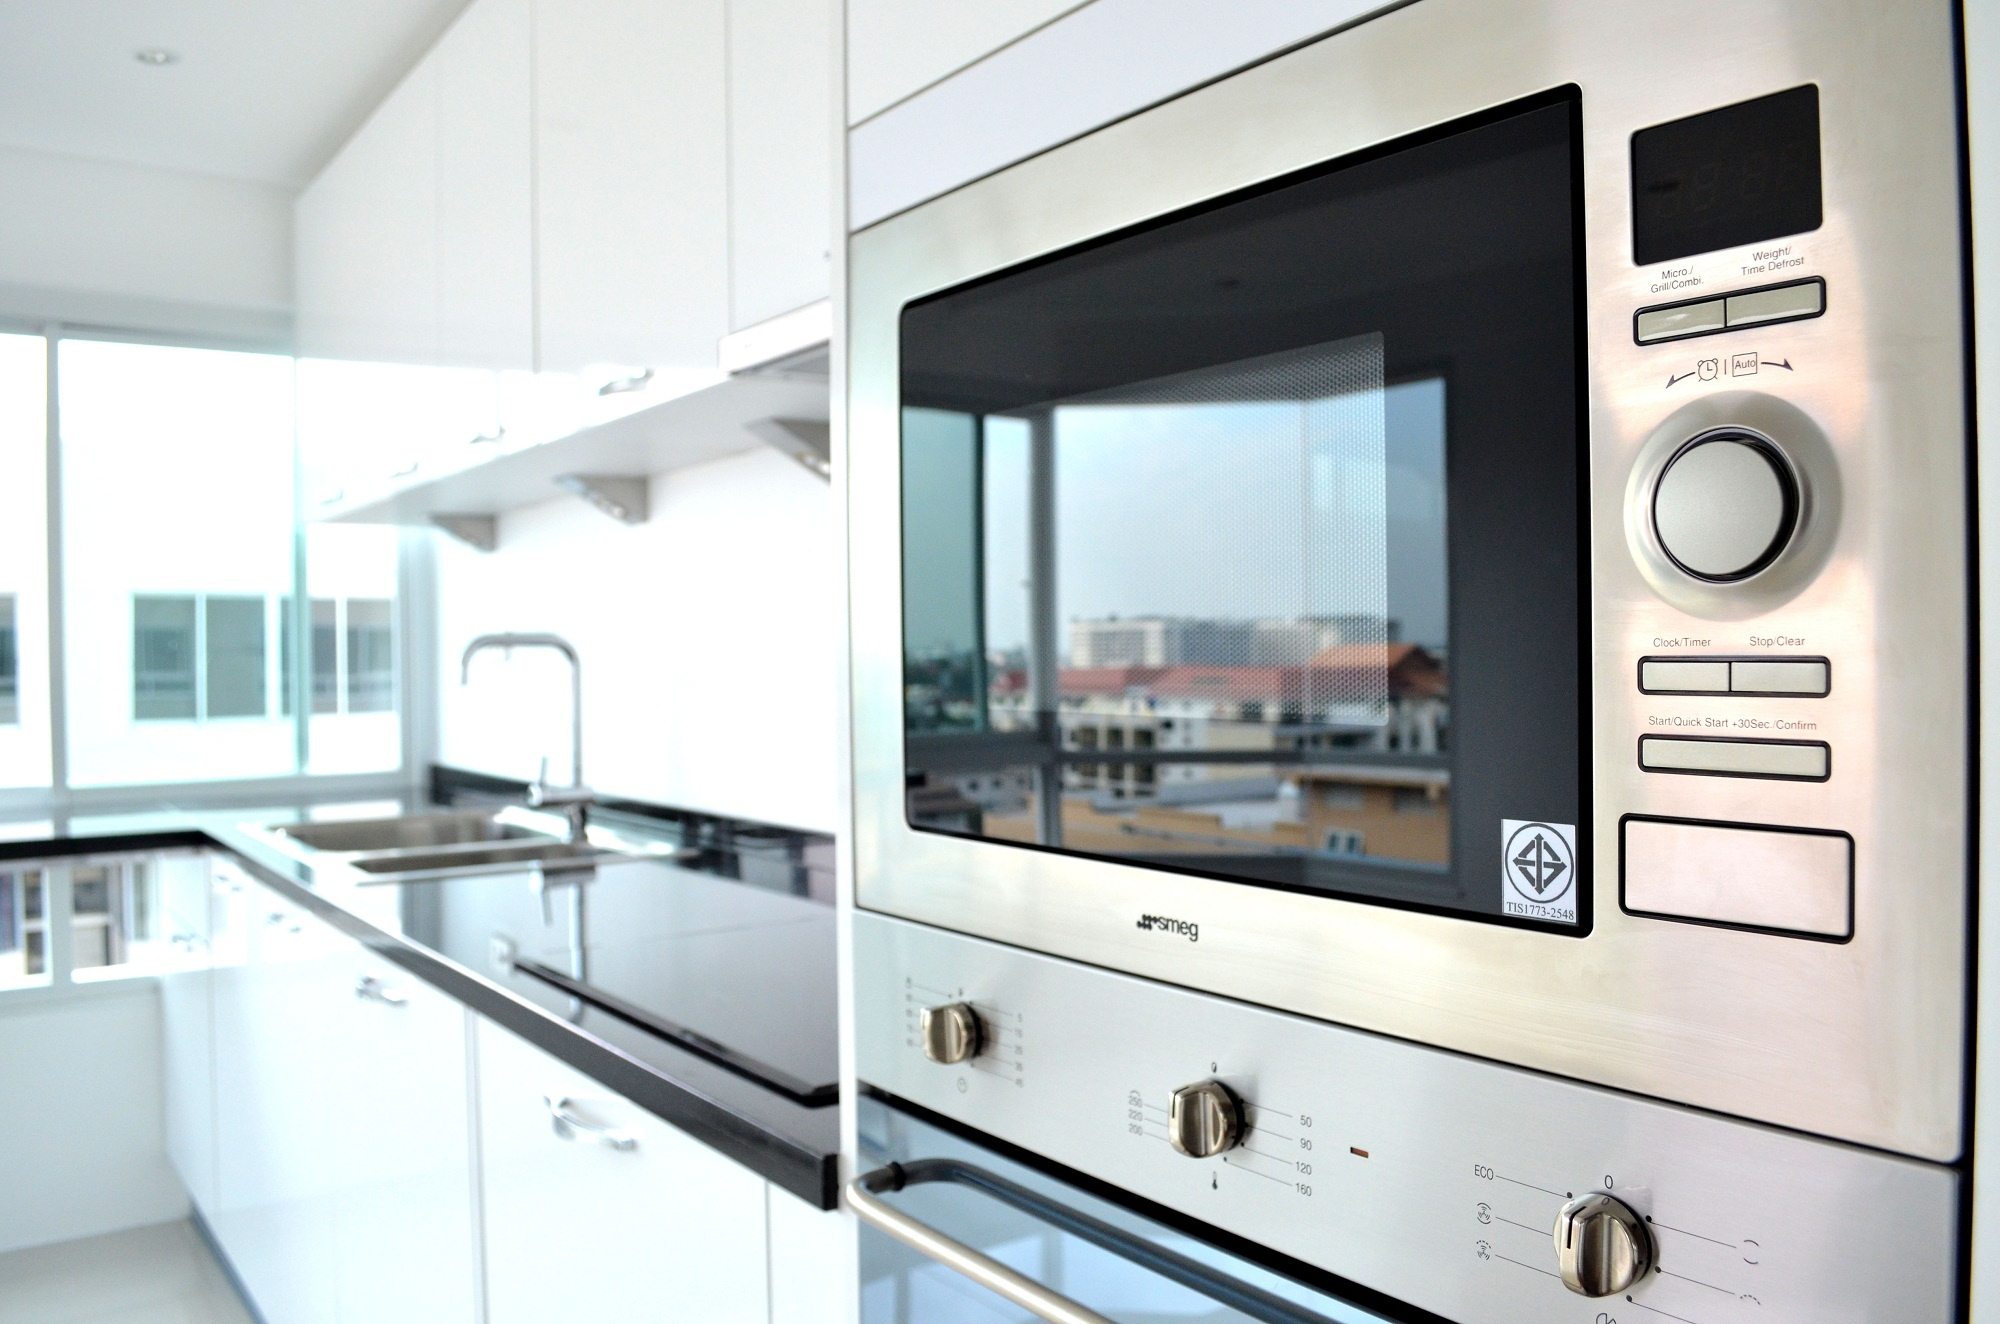 Kitchen Appliance Repairs Oven Repair And Other Appliance Repairs On The Central Coast